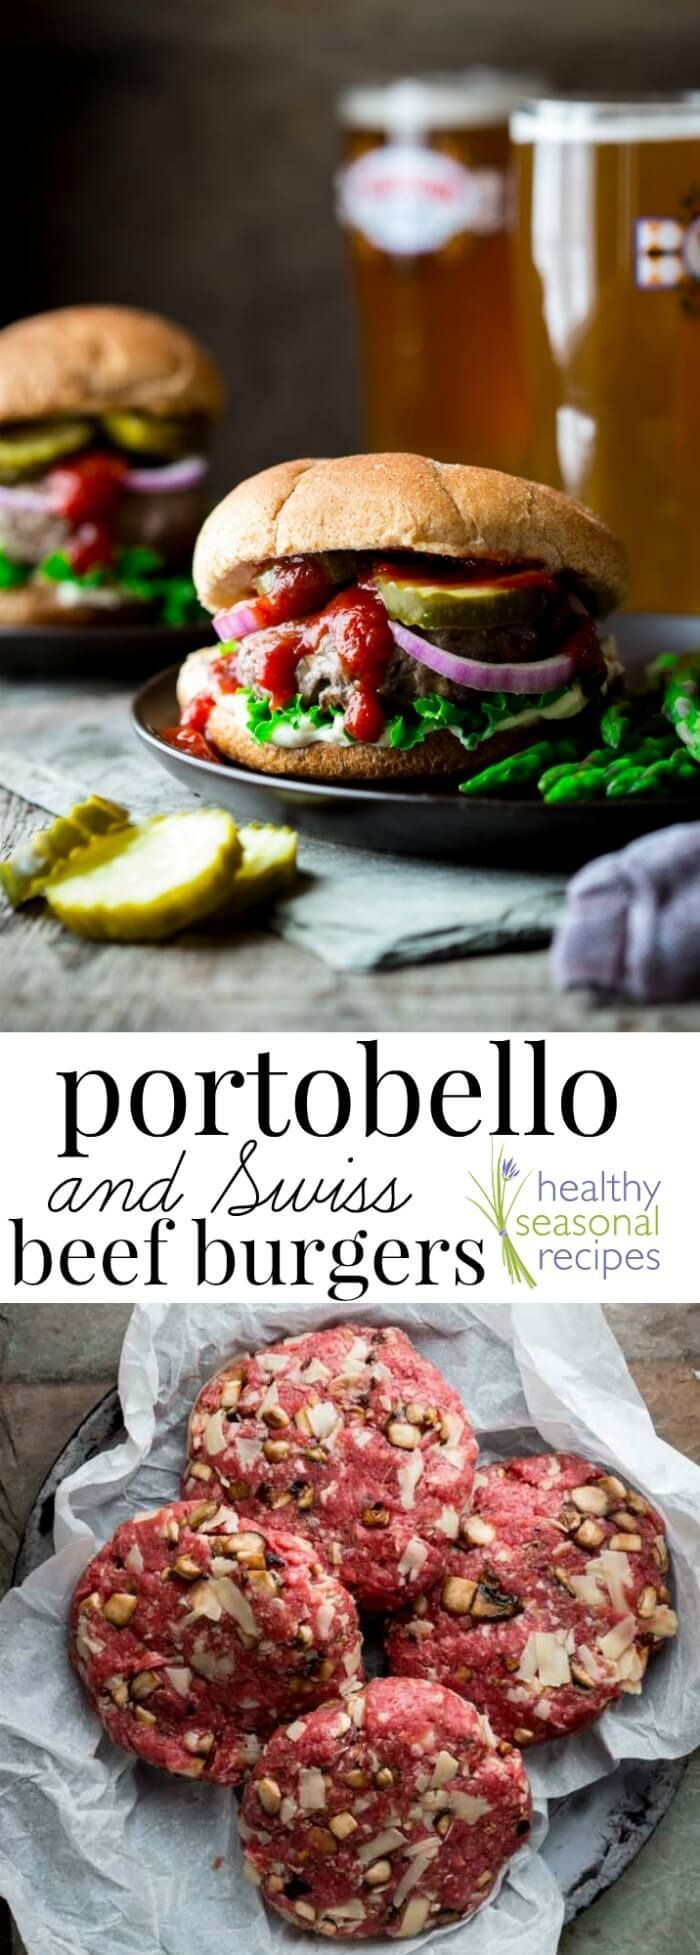 These Portobello and Swiss Beef Burgers are made with ground grass-fed beef stuffed through with shredded Swiss Cheese and chopped portobello mushrooms. They're ready in under 30 minutes, so you can get a delicious kid-friendly dinner on the table lickety-split! Healthy Seasonal Recipes